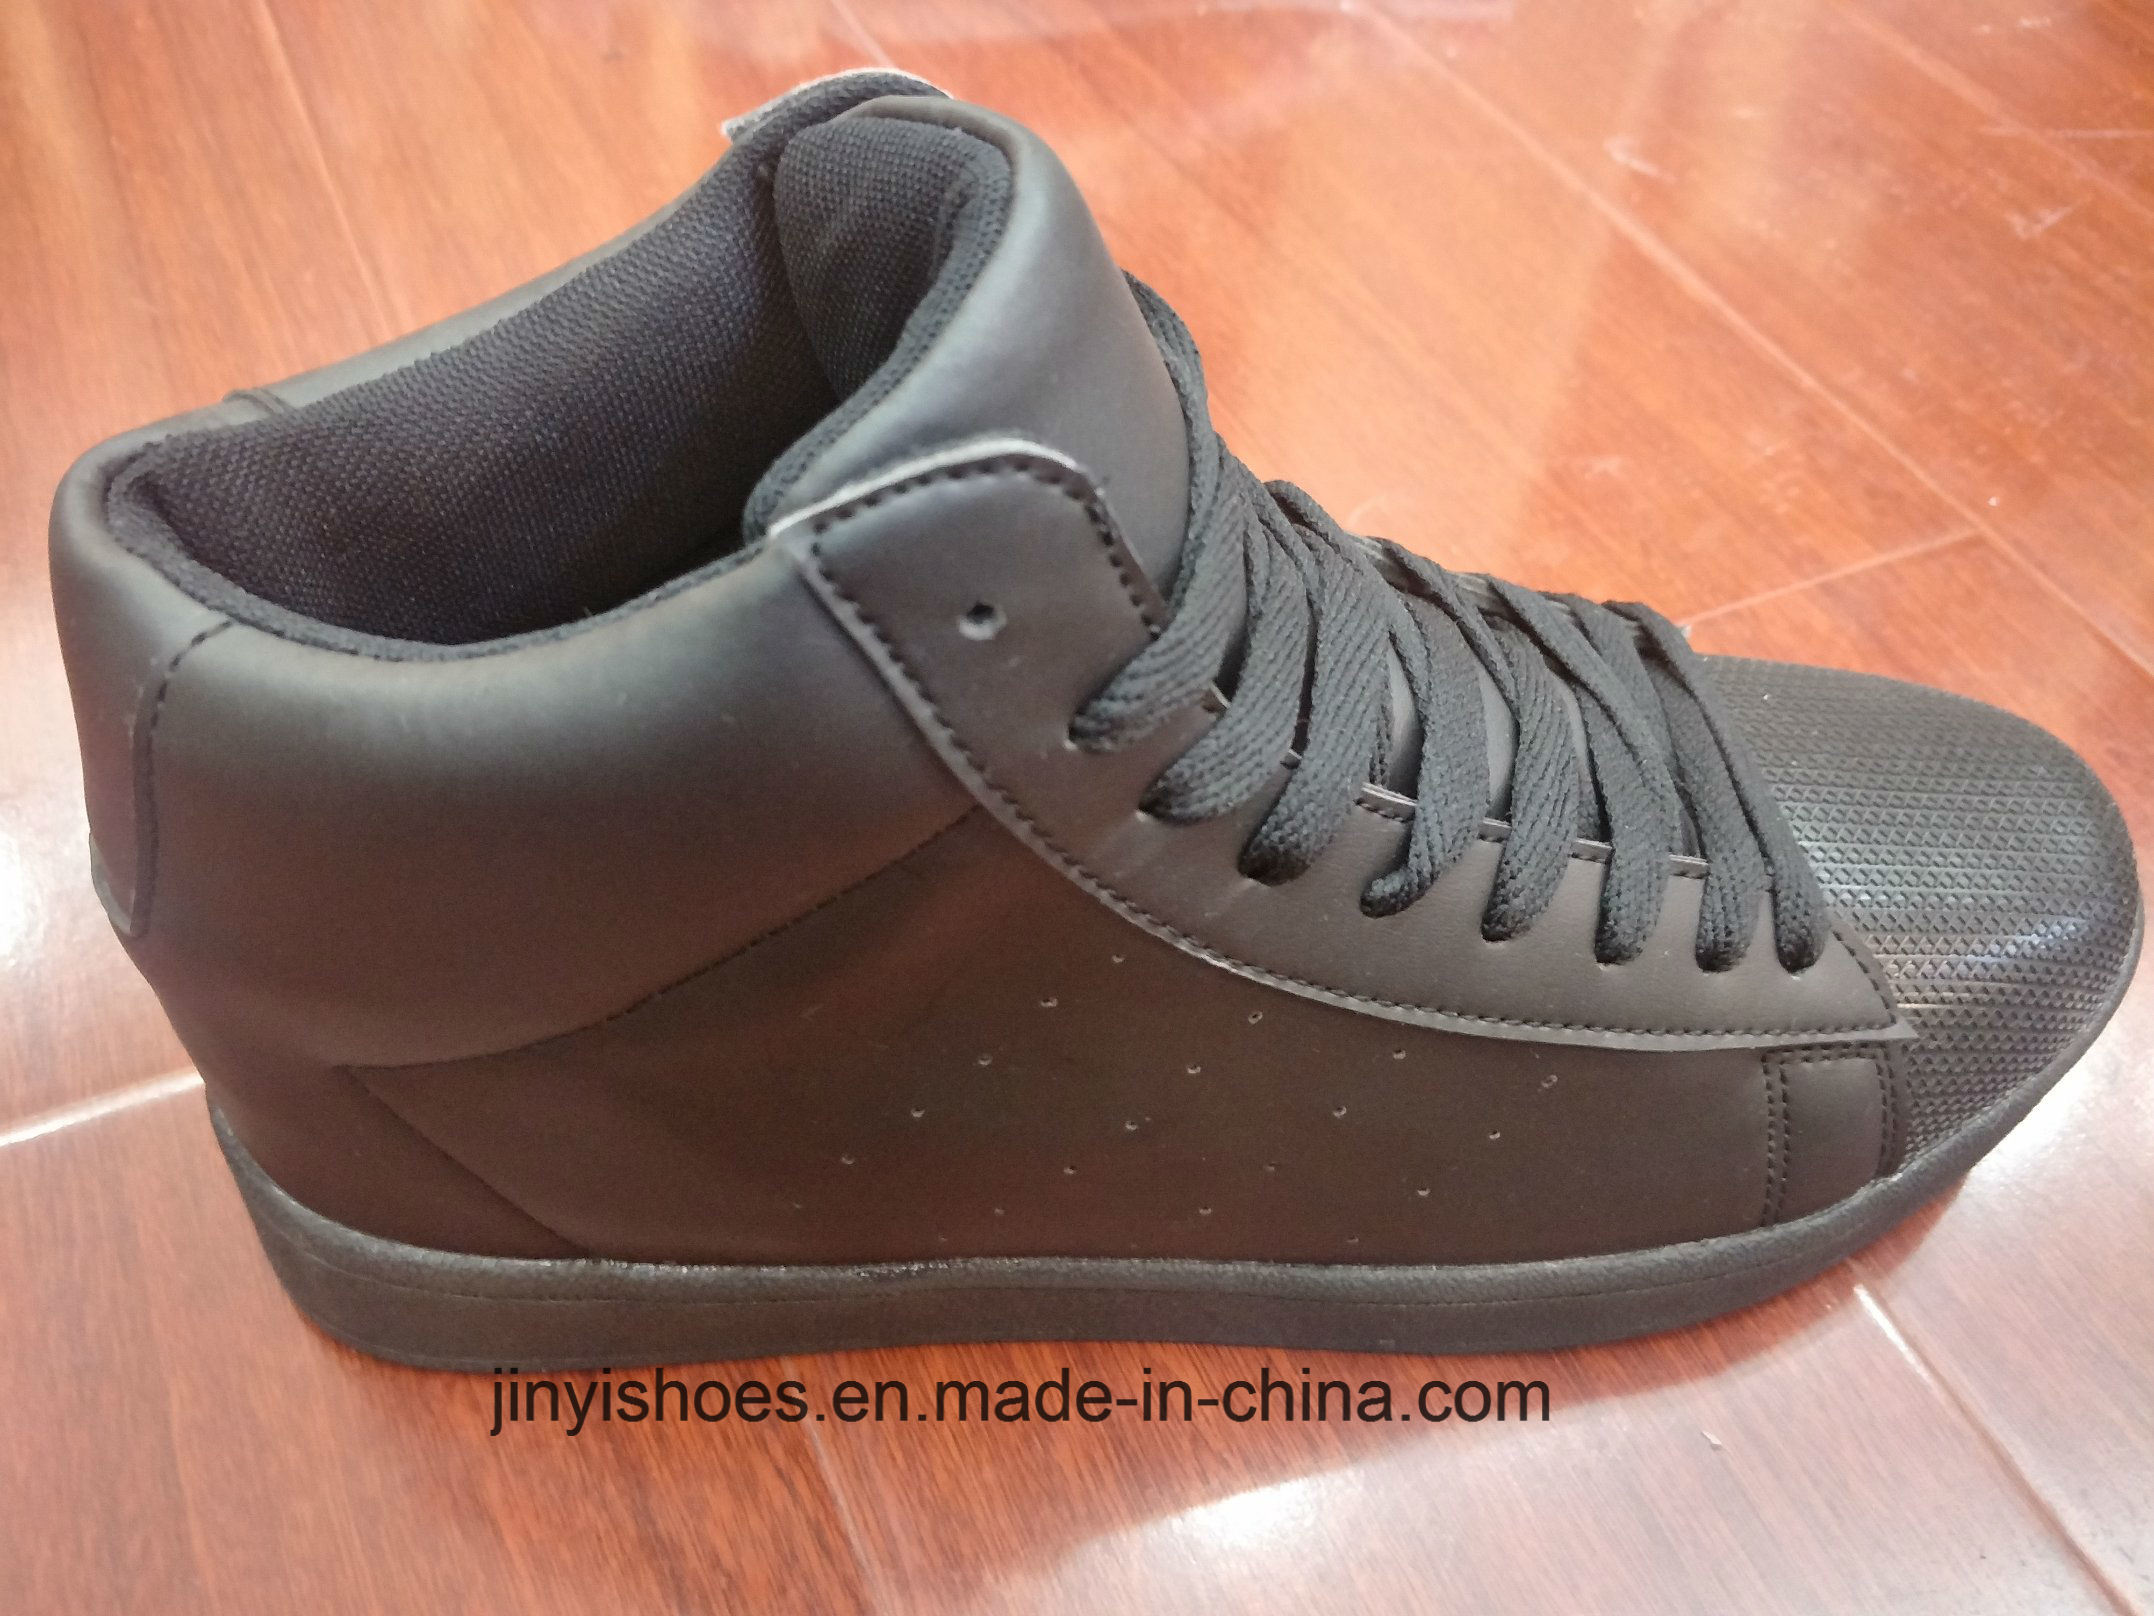 New Style More Color Casual Shoes /Comfort Shoes/Boy′s Shoes/Fashion Shoes